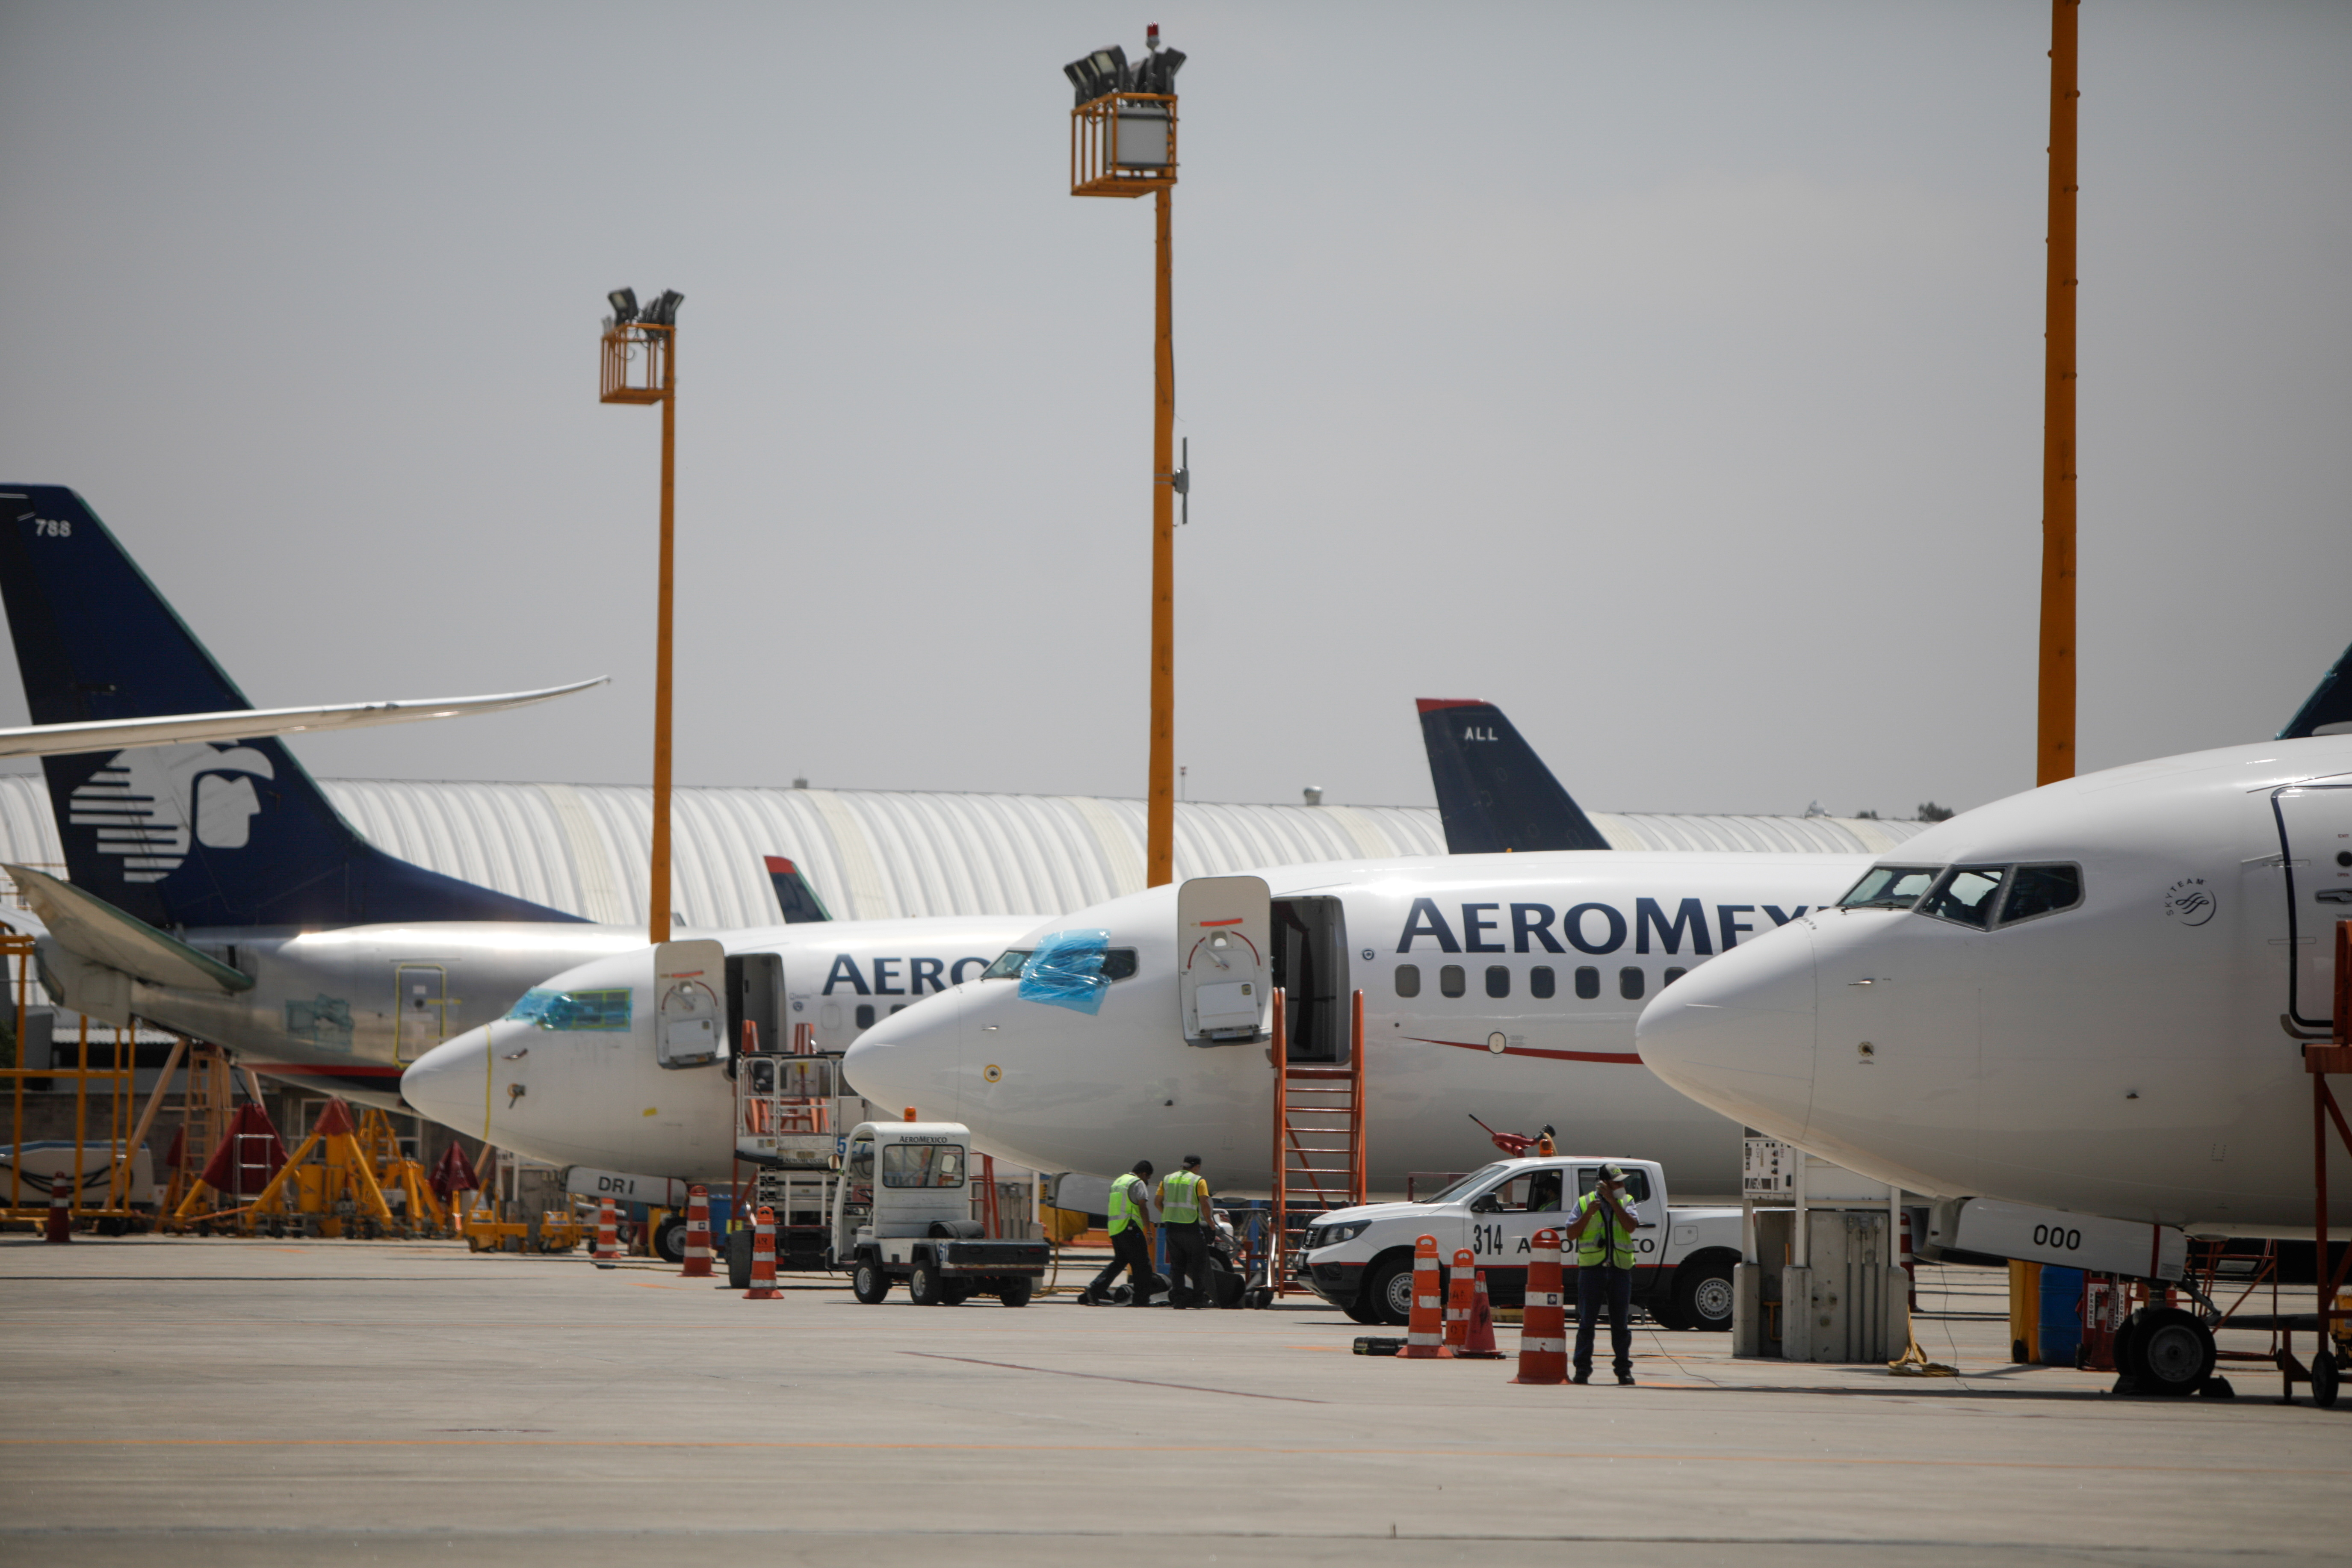 Aeromexico airplanes are pictured at the Benito Juarez International airport, in Mexico City, Mexico, July 14, 2021.  REUTERS/Luis Cortes